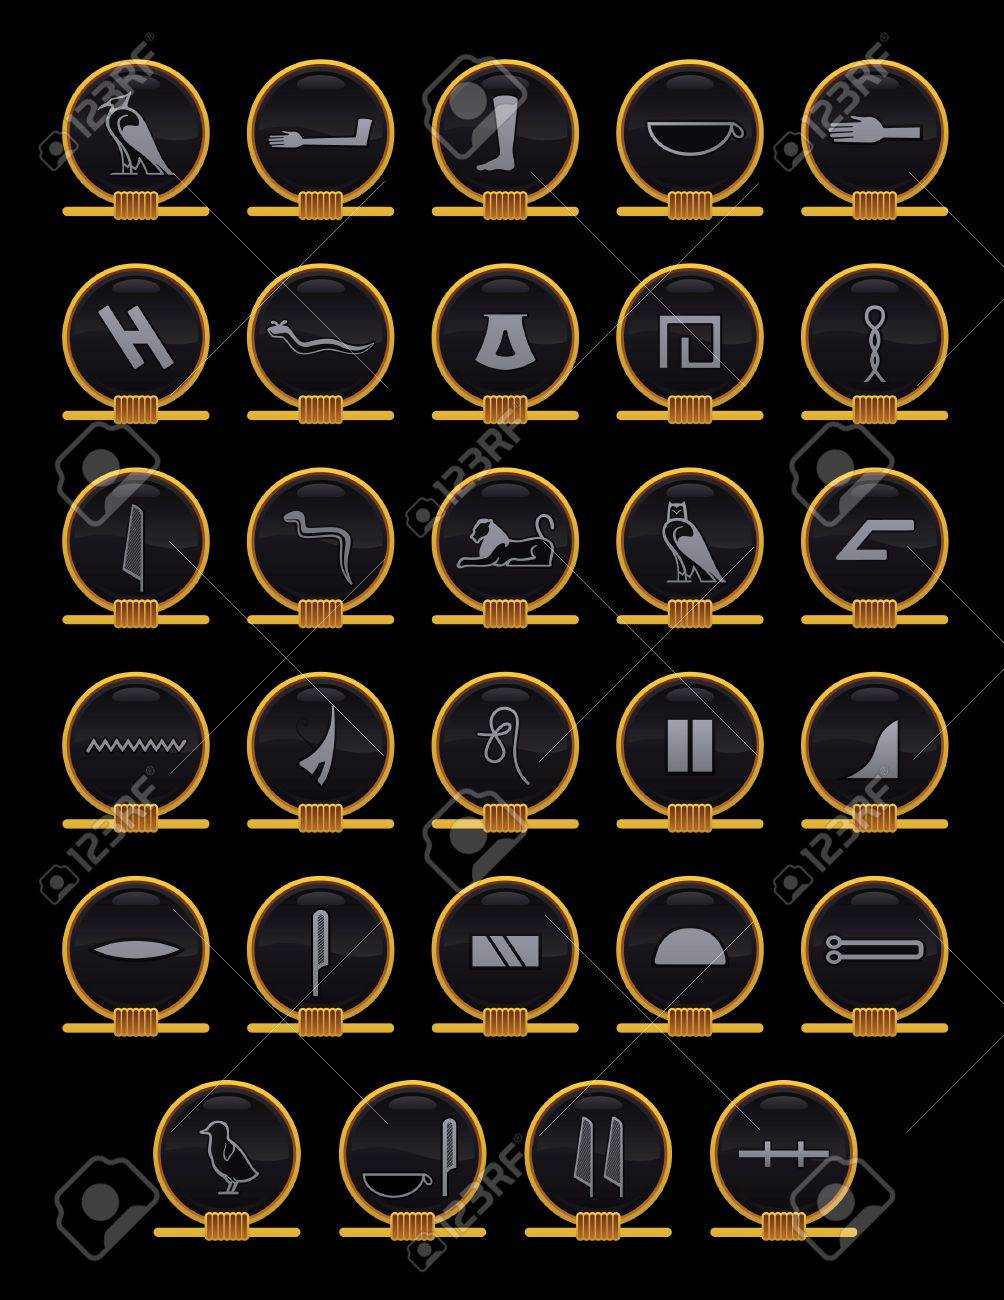 egyptian alphabet icons royalty free cliparts vectors and stock